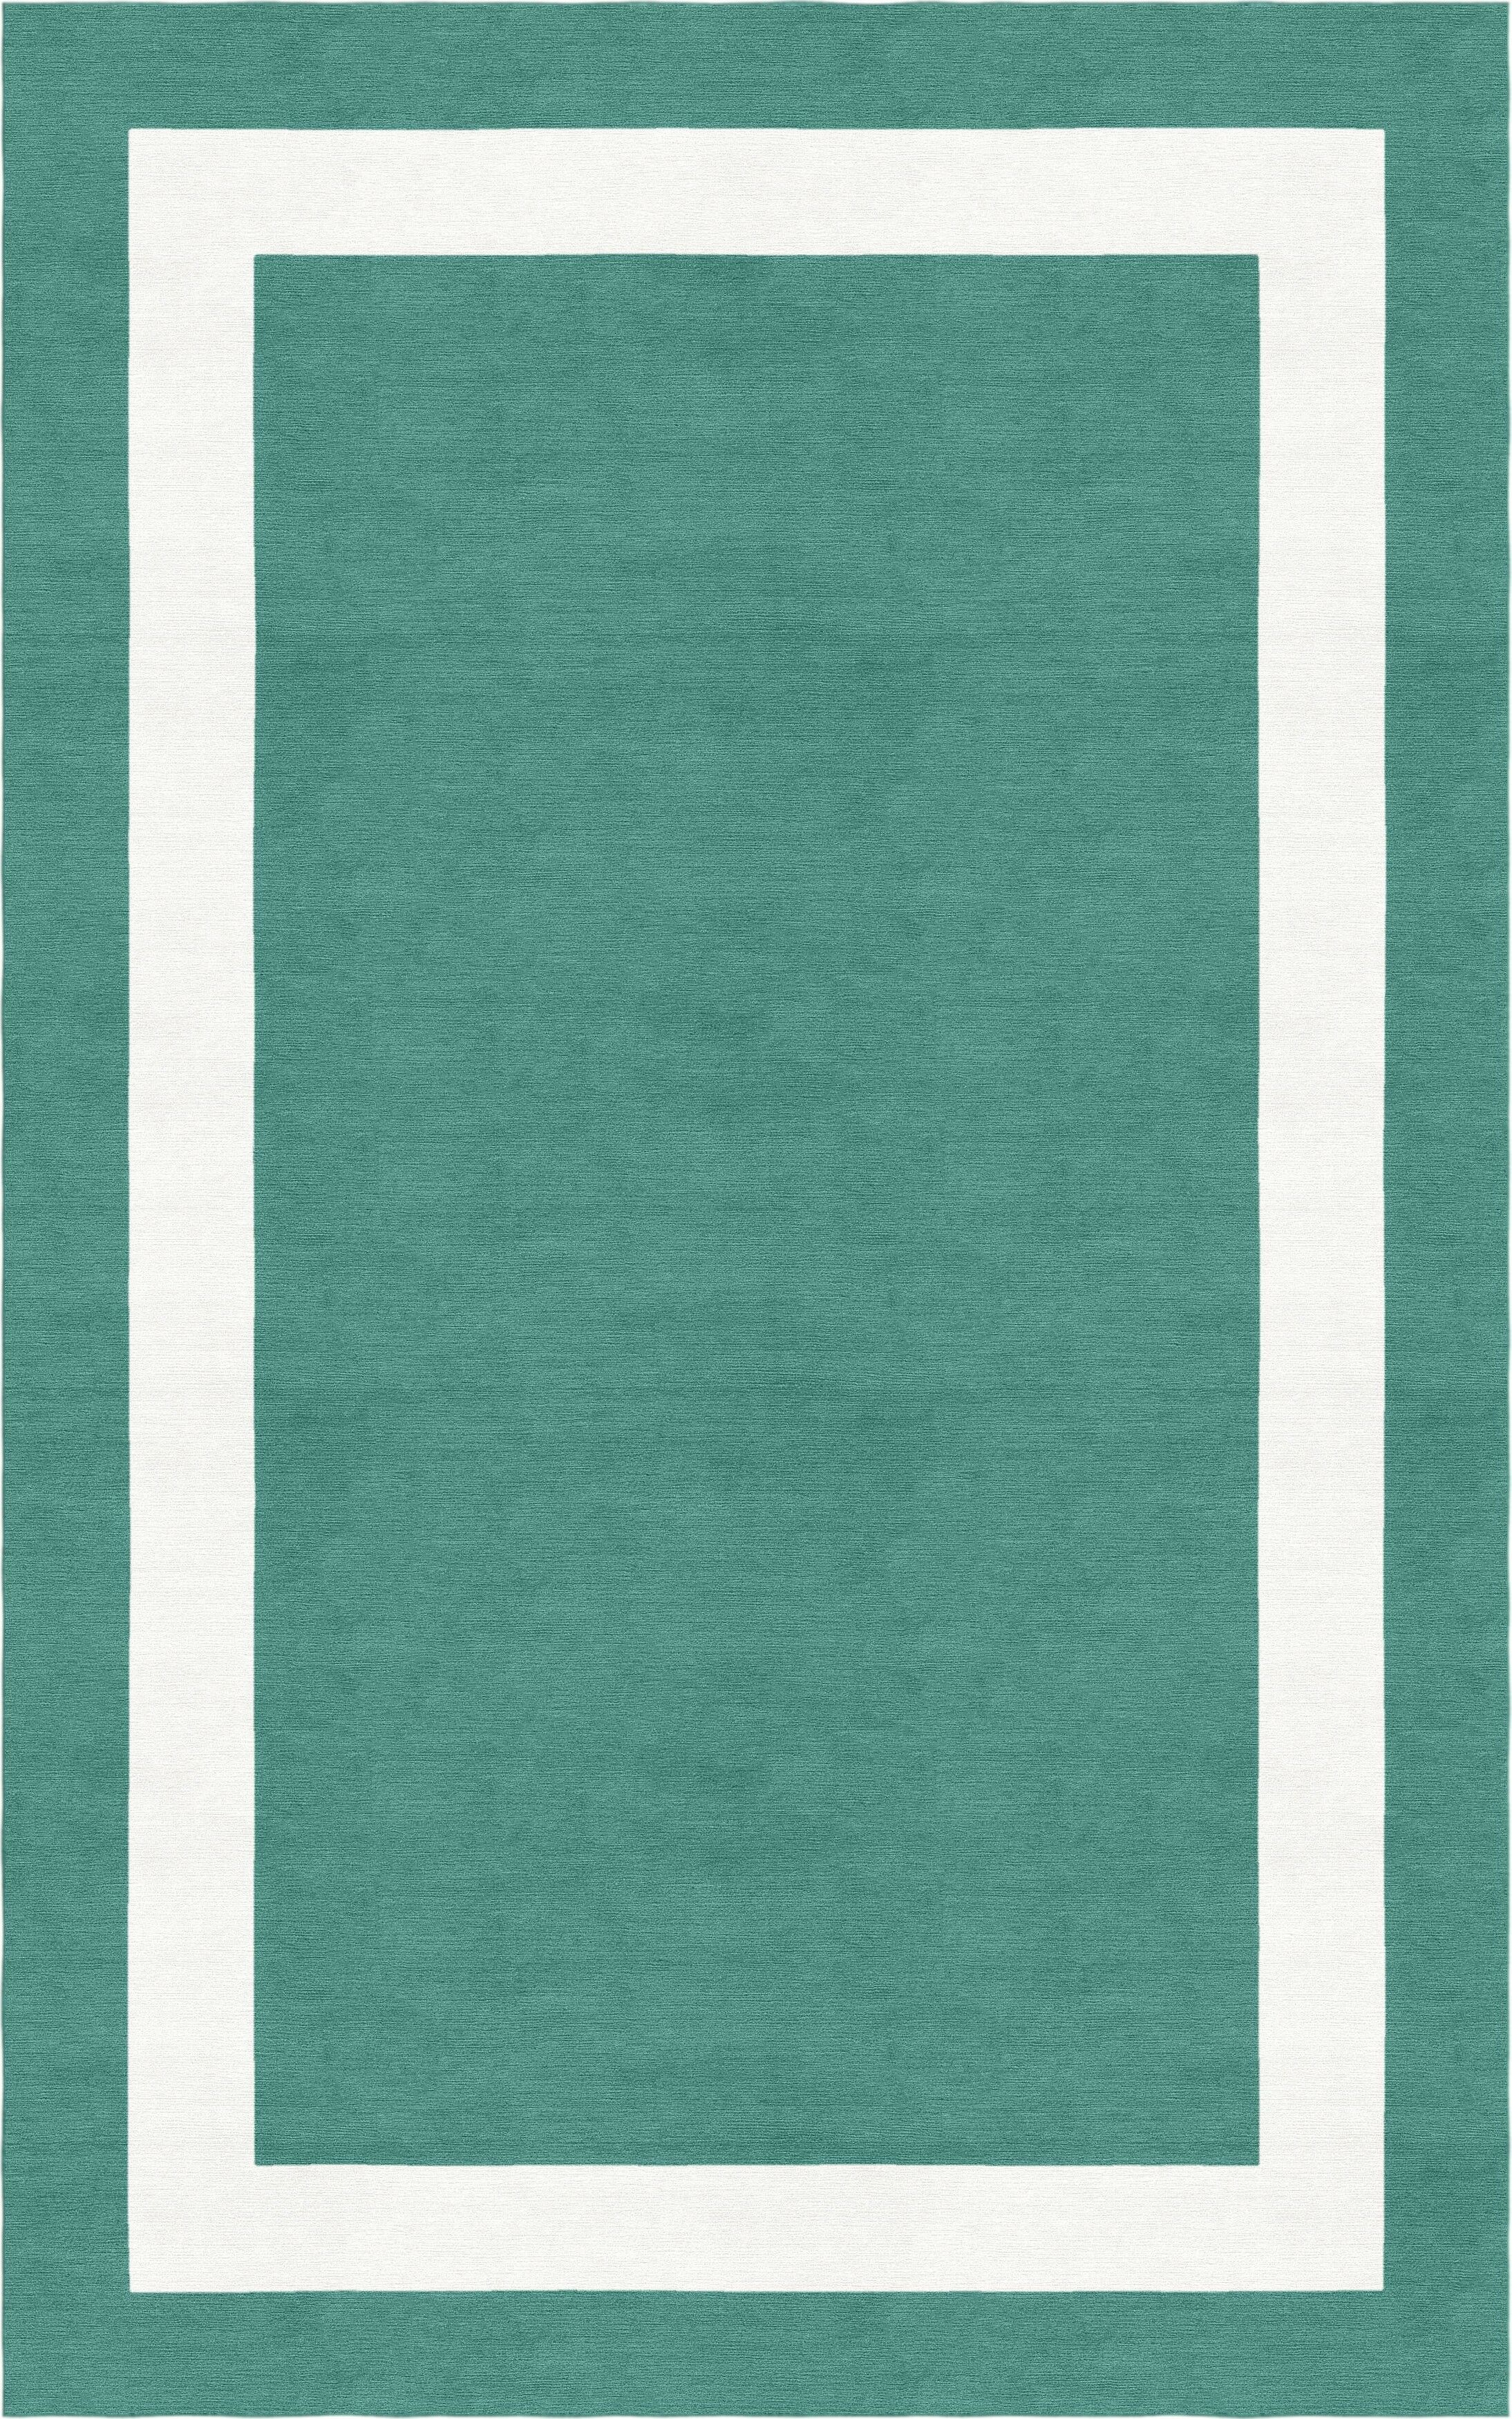 Crittenton Border Hand-Tufted Wool Teal/White Area Rug Rug Size: Rectangle 6' x 9'